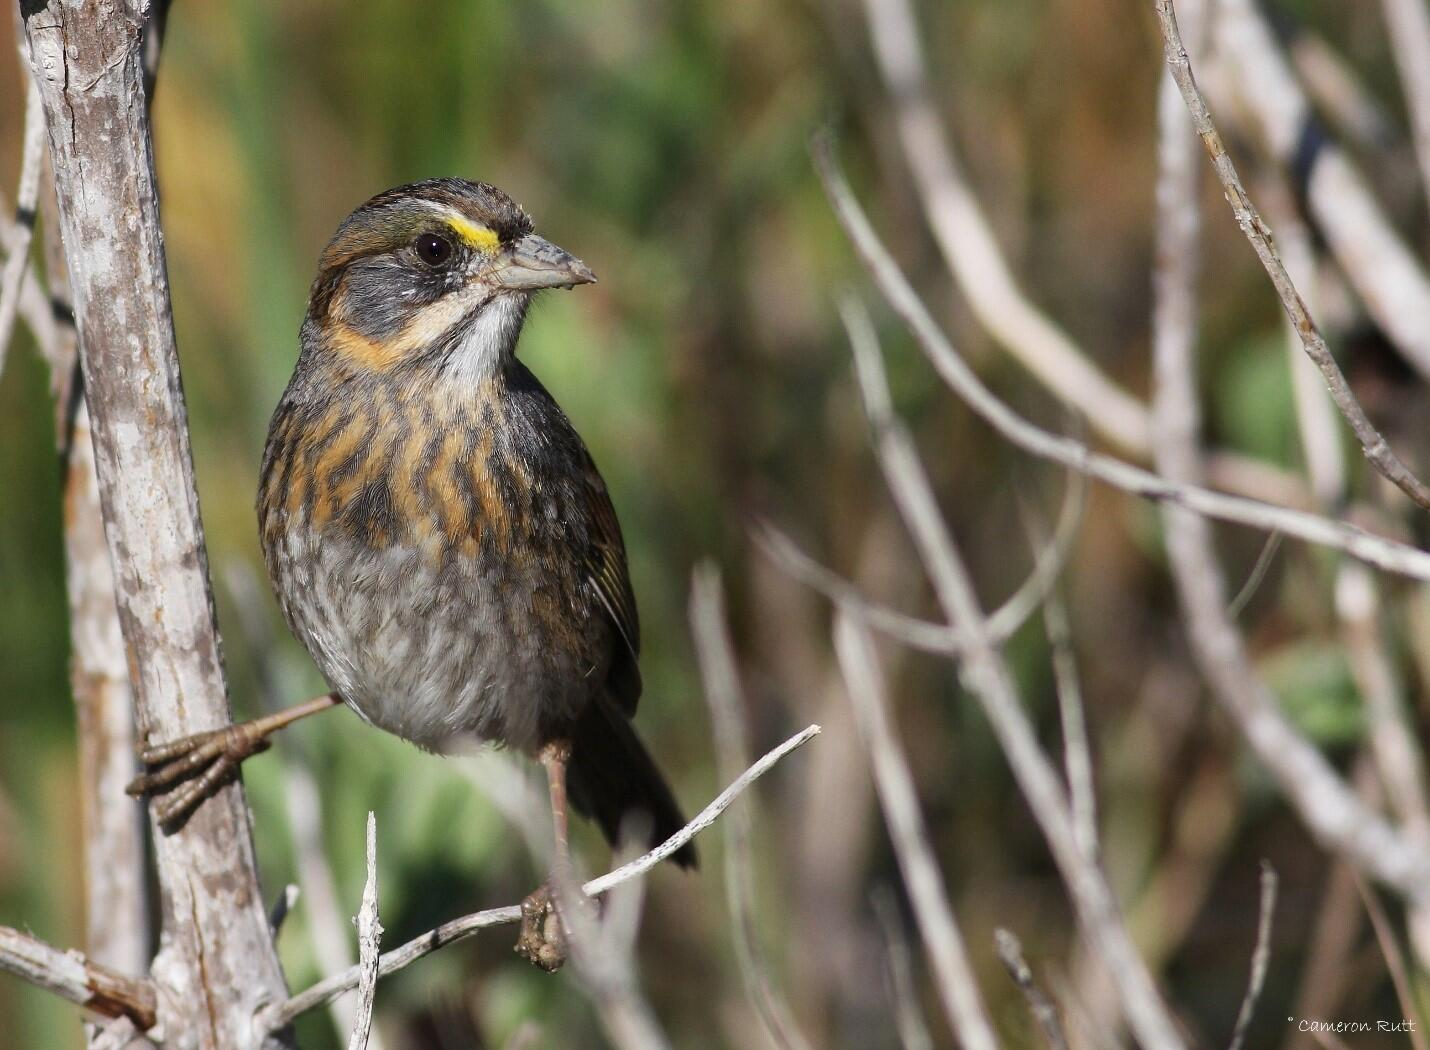 More than 3.5 million, or half of the world's, Seaside Sparrows depend on Louisiana's estuarine marshes.